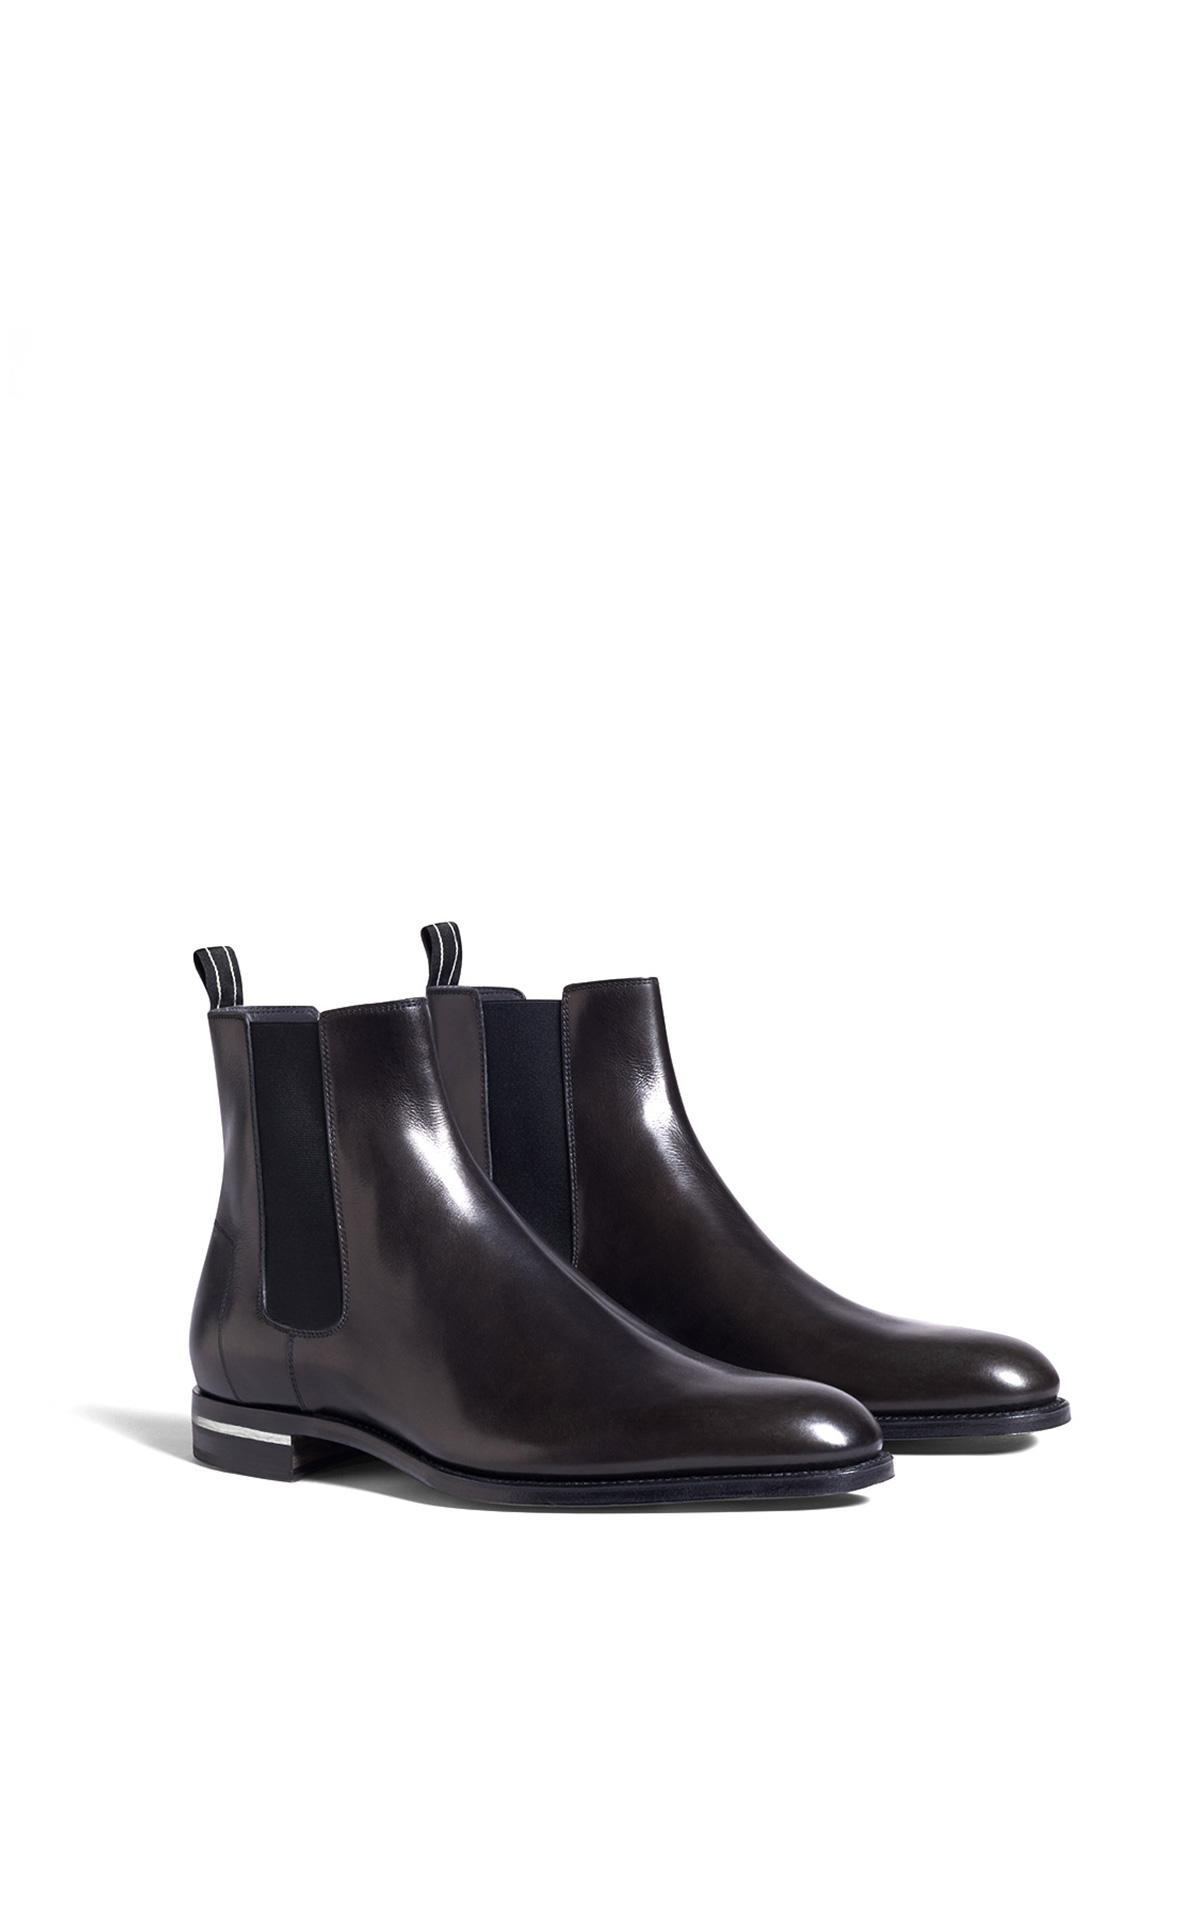 dunhill Brown Chelsea boots | La Vallée Village